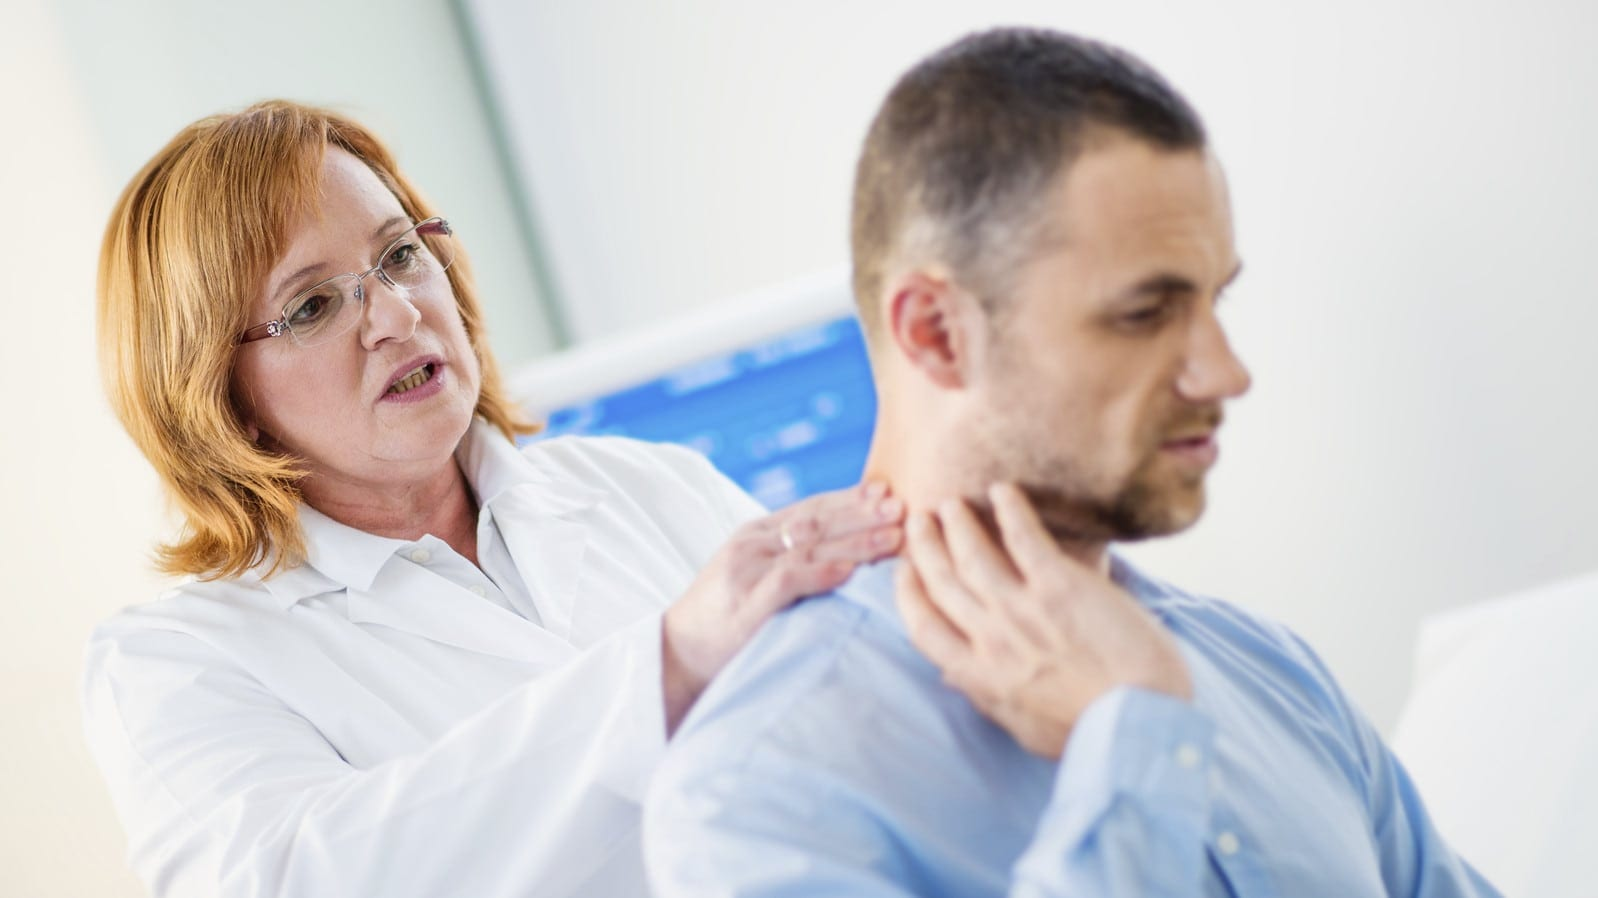 Female Doctor Examining Male Patient's Neck Injury